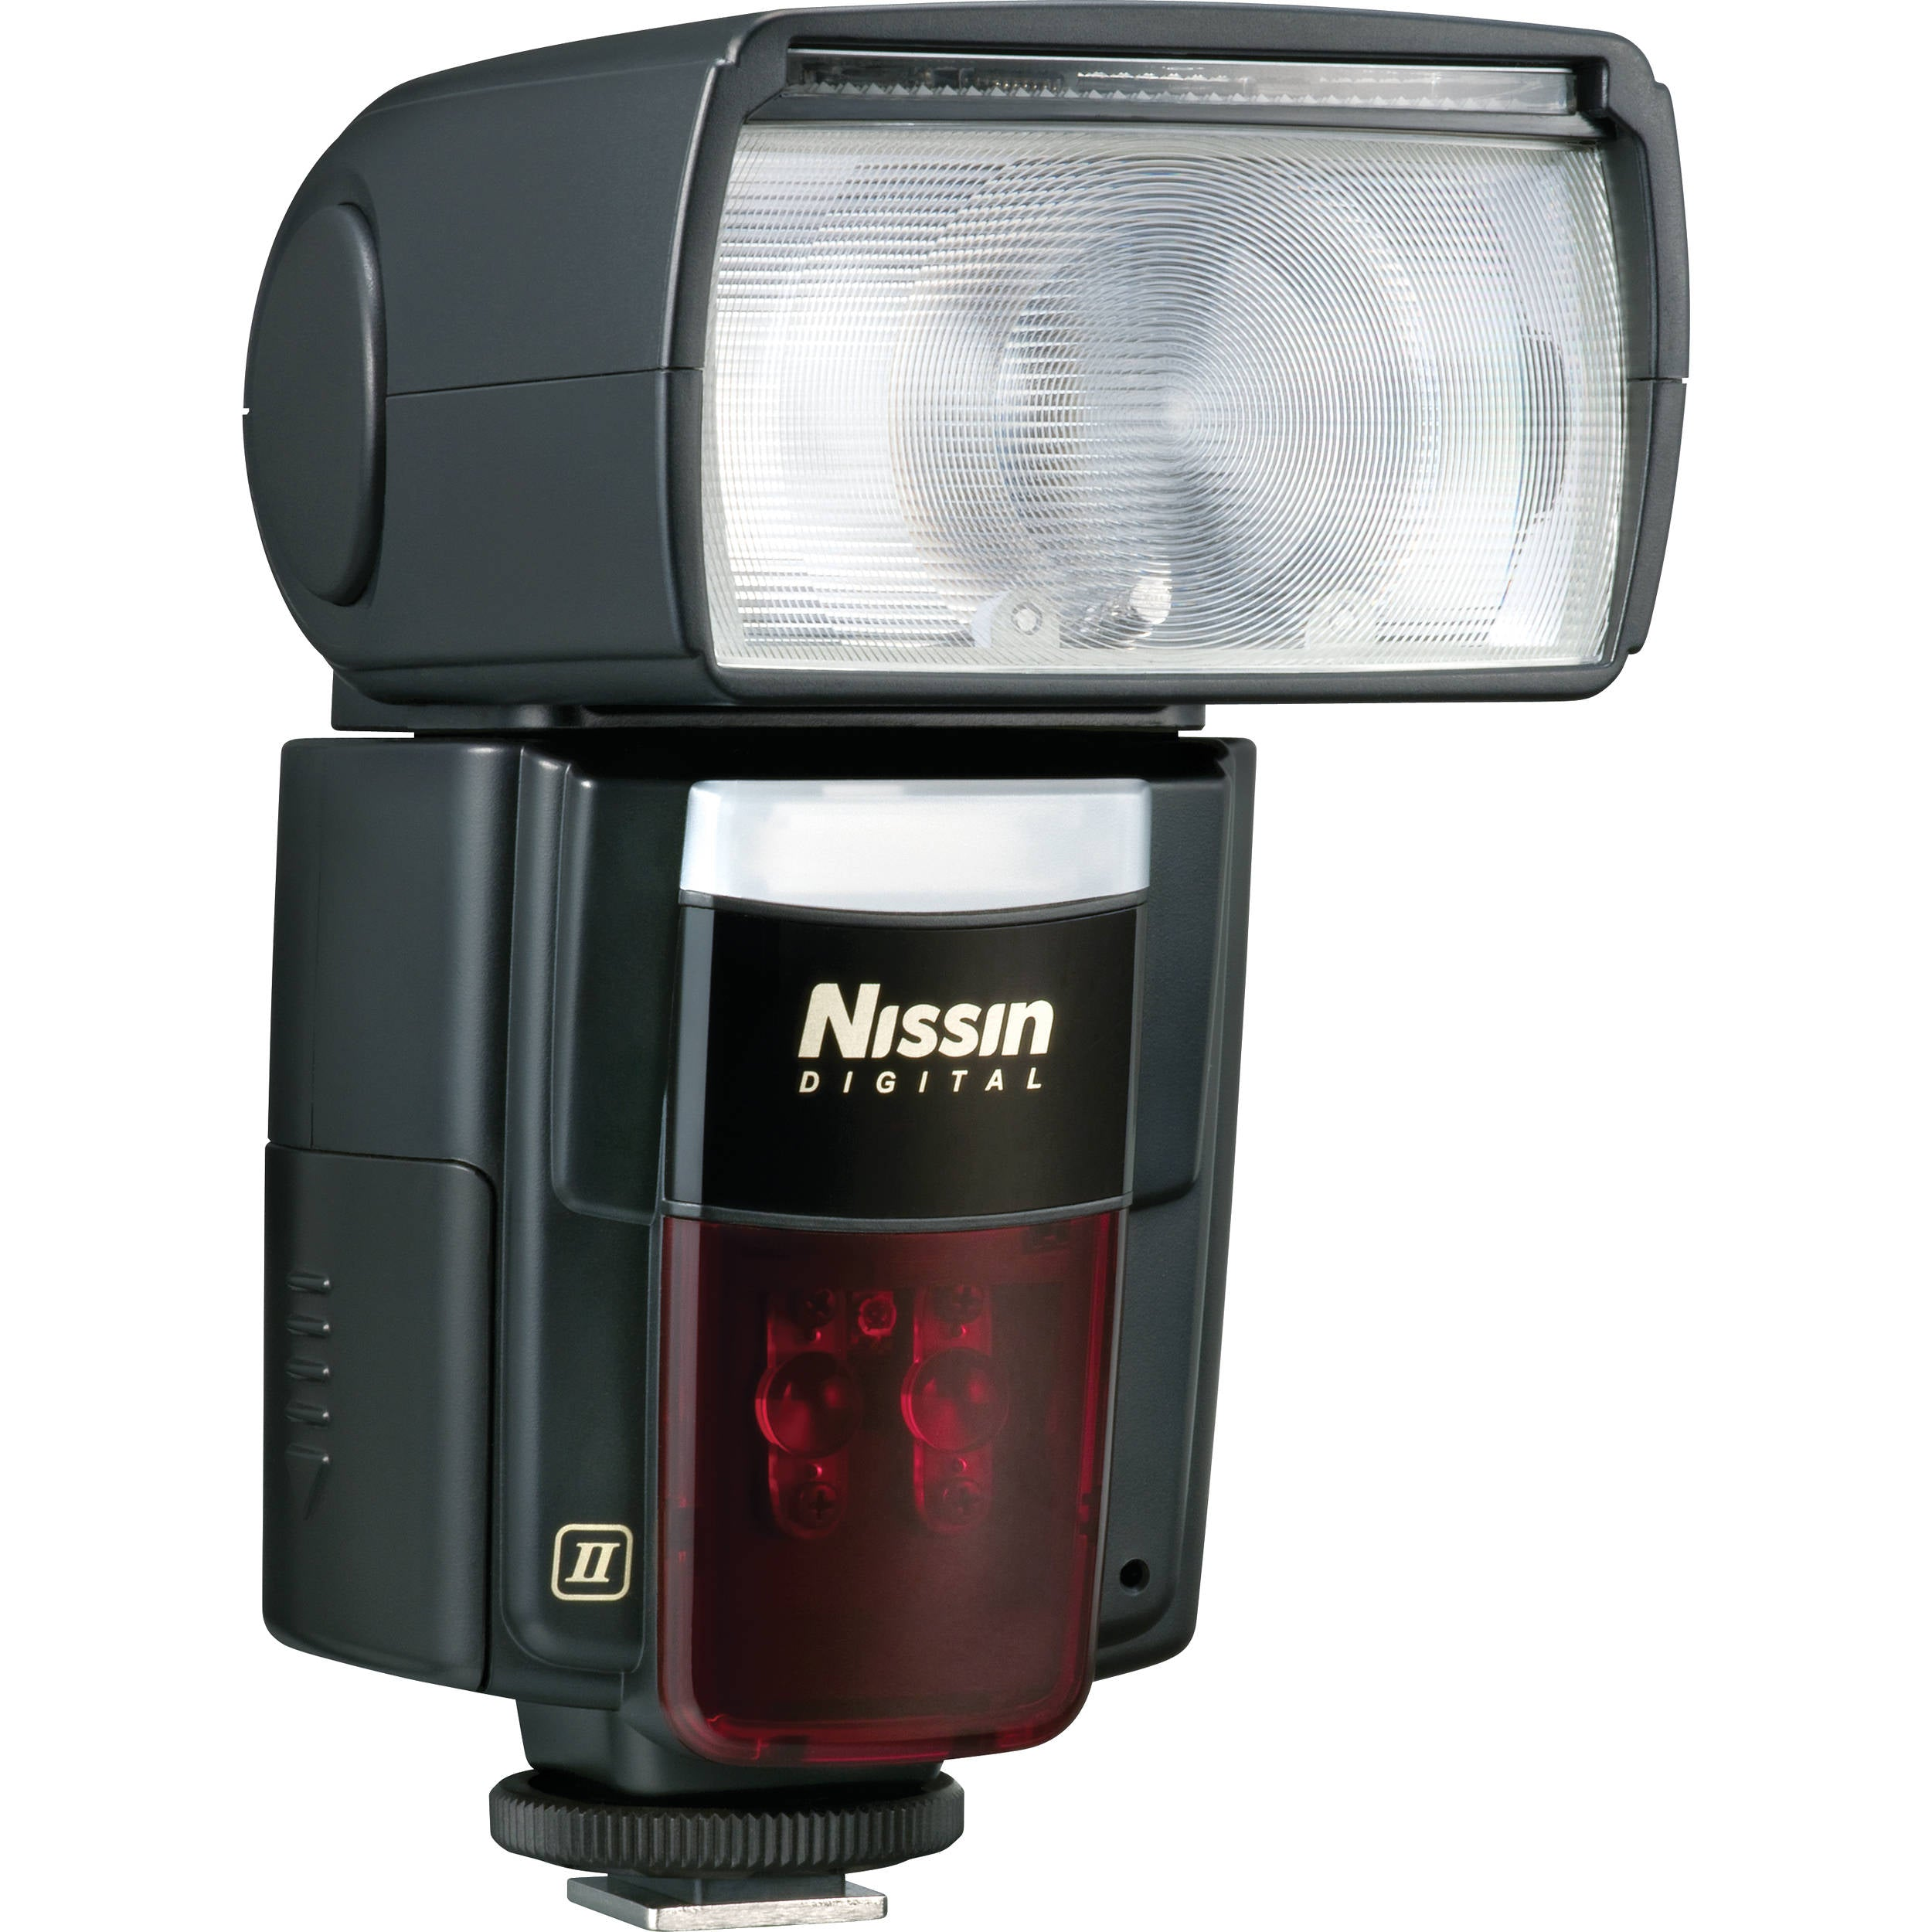 Nissin Di866 MkII Flash - Sony